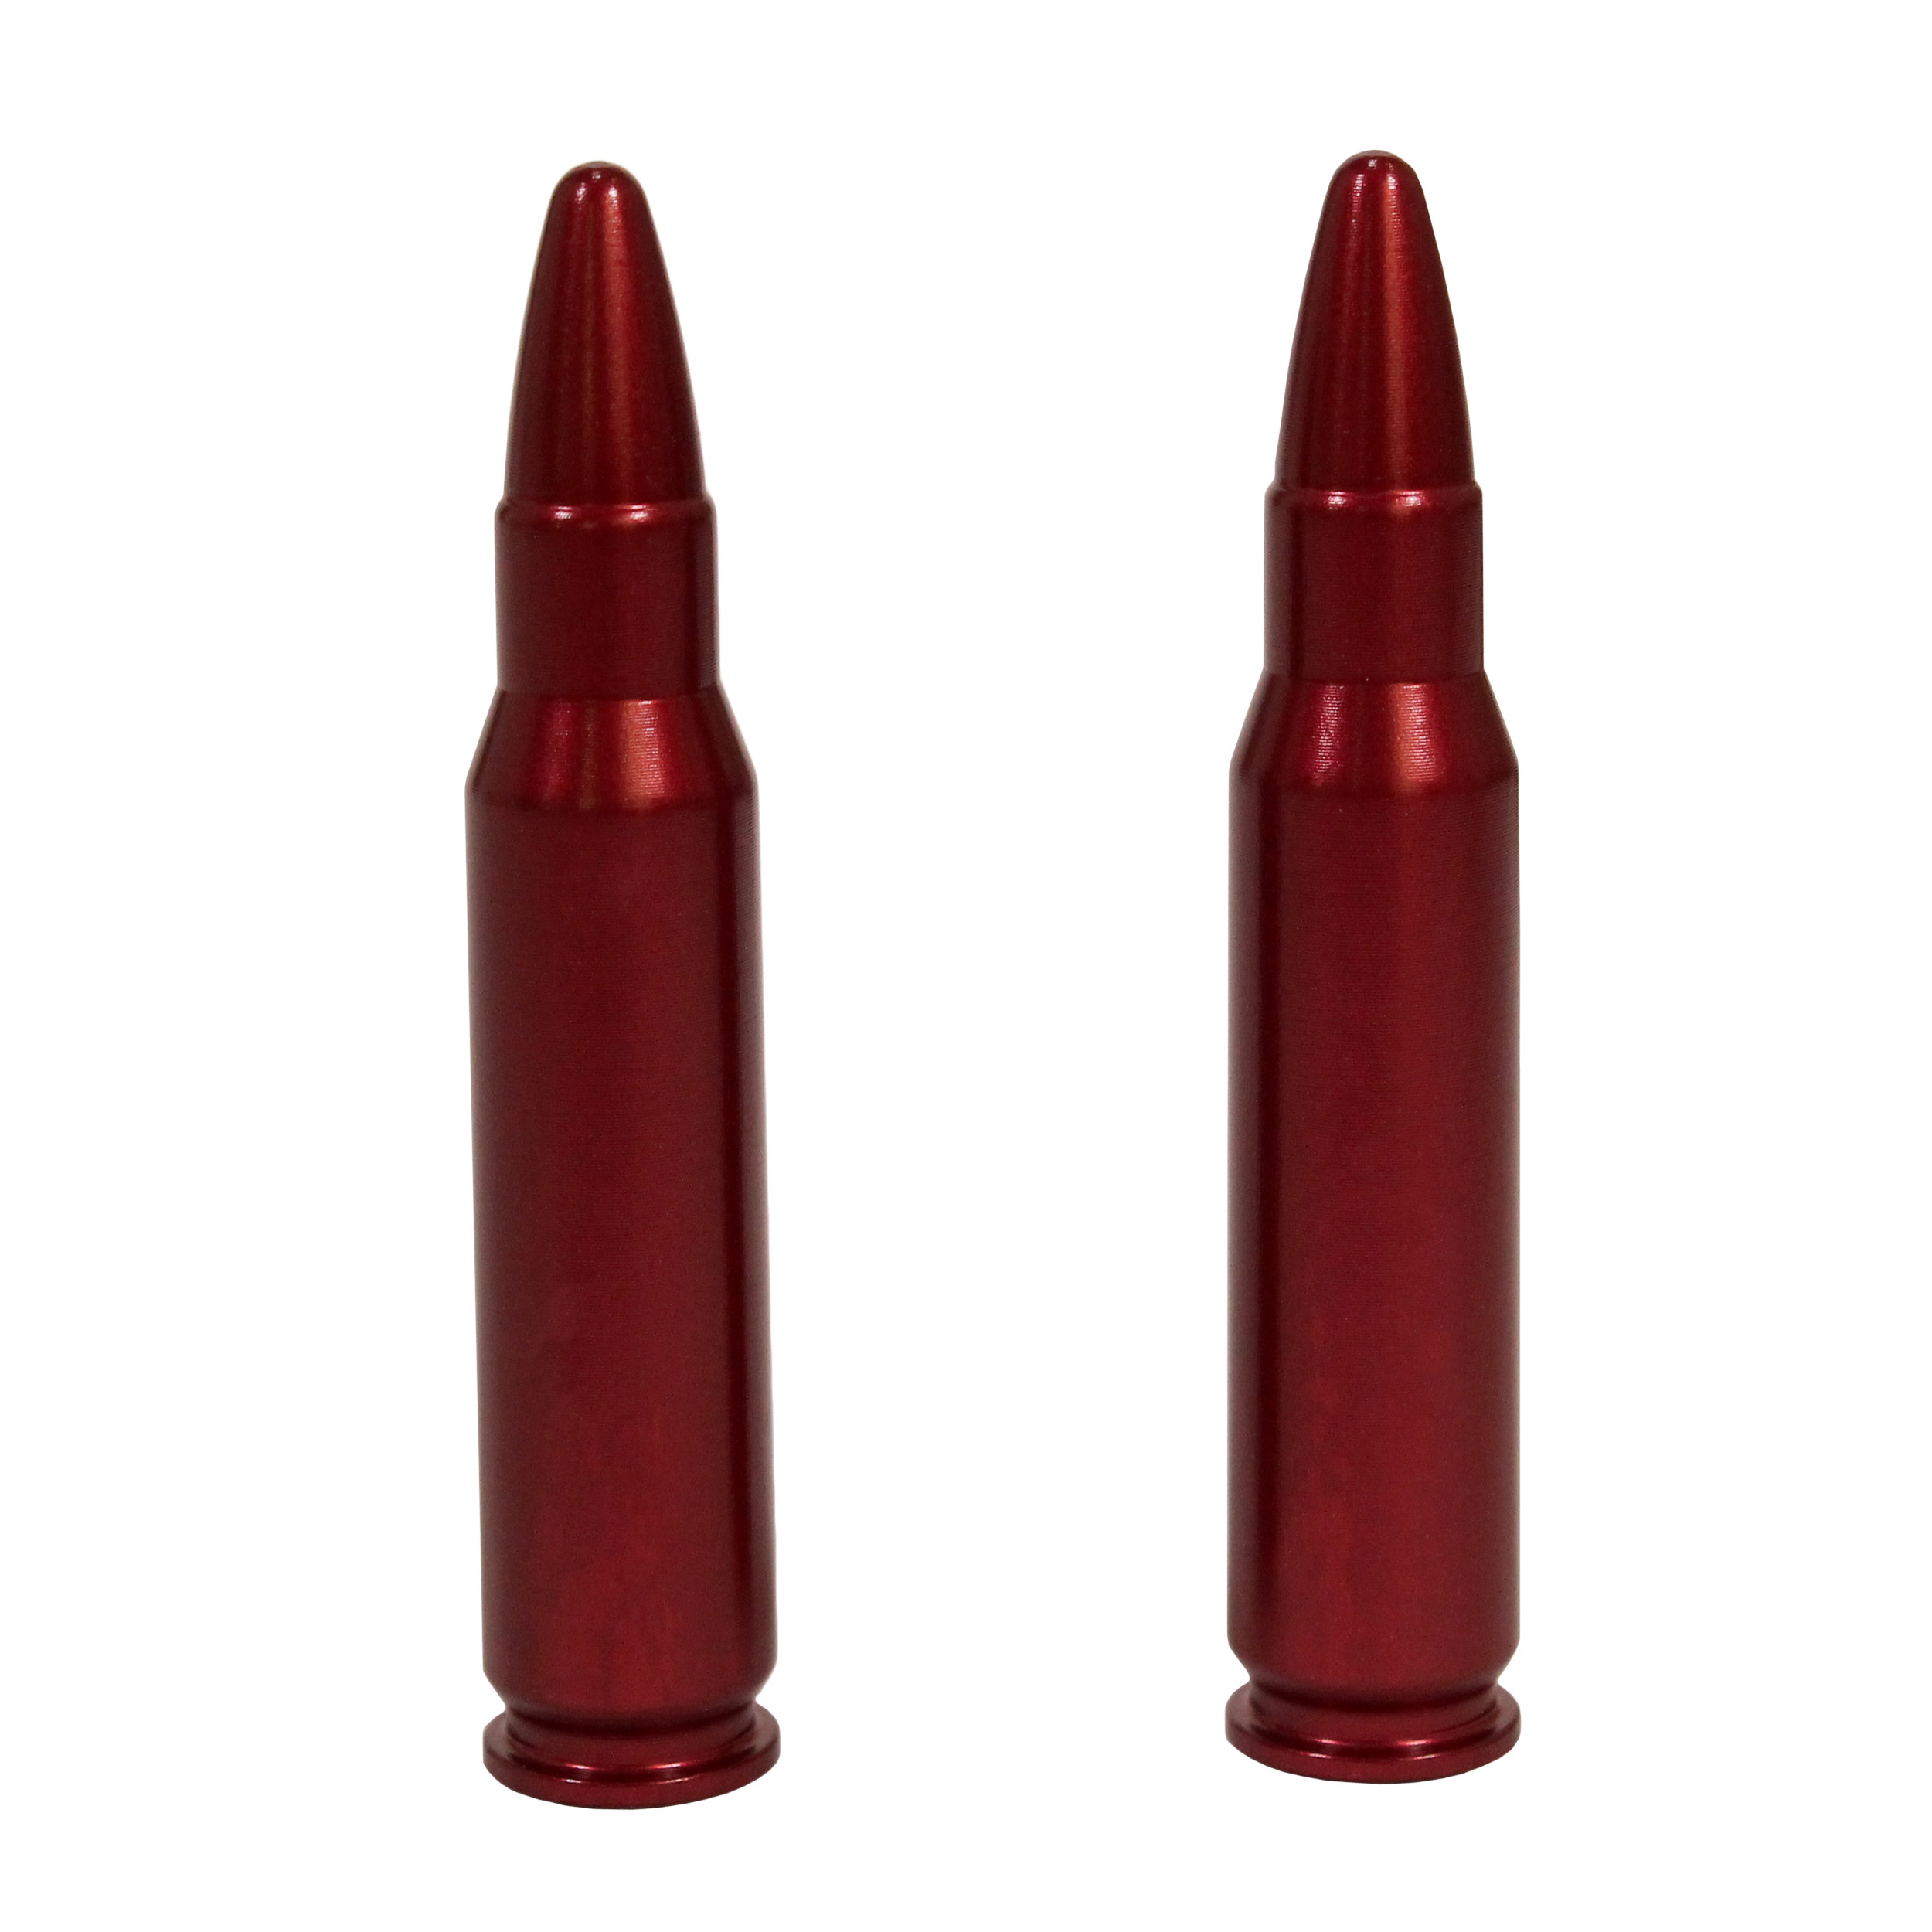 a-zoom - Rifle Snap Caps - 308 WIN RFL METAL SNAP-CAPS 2PK for sale